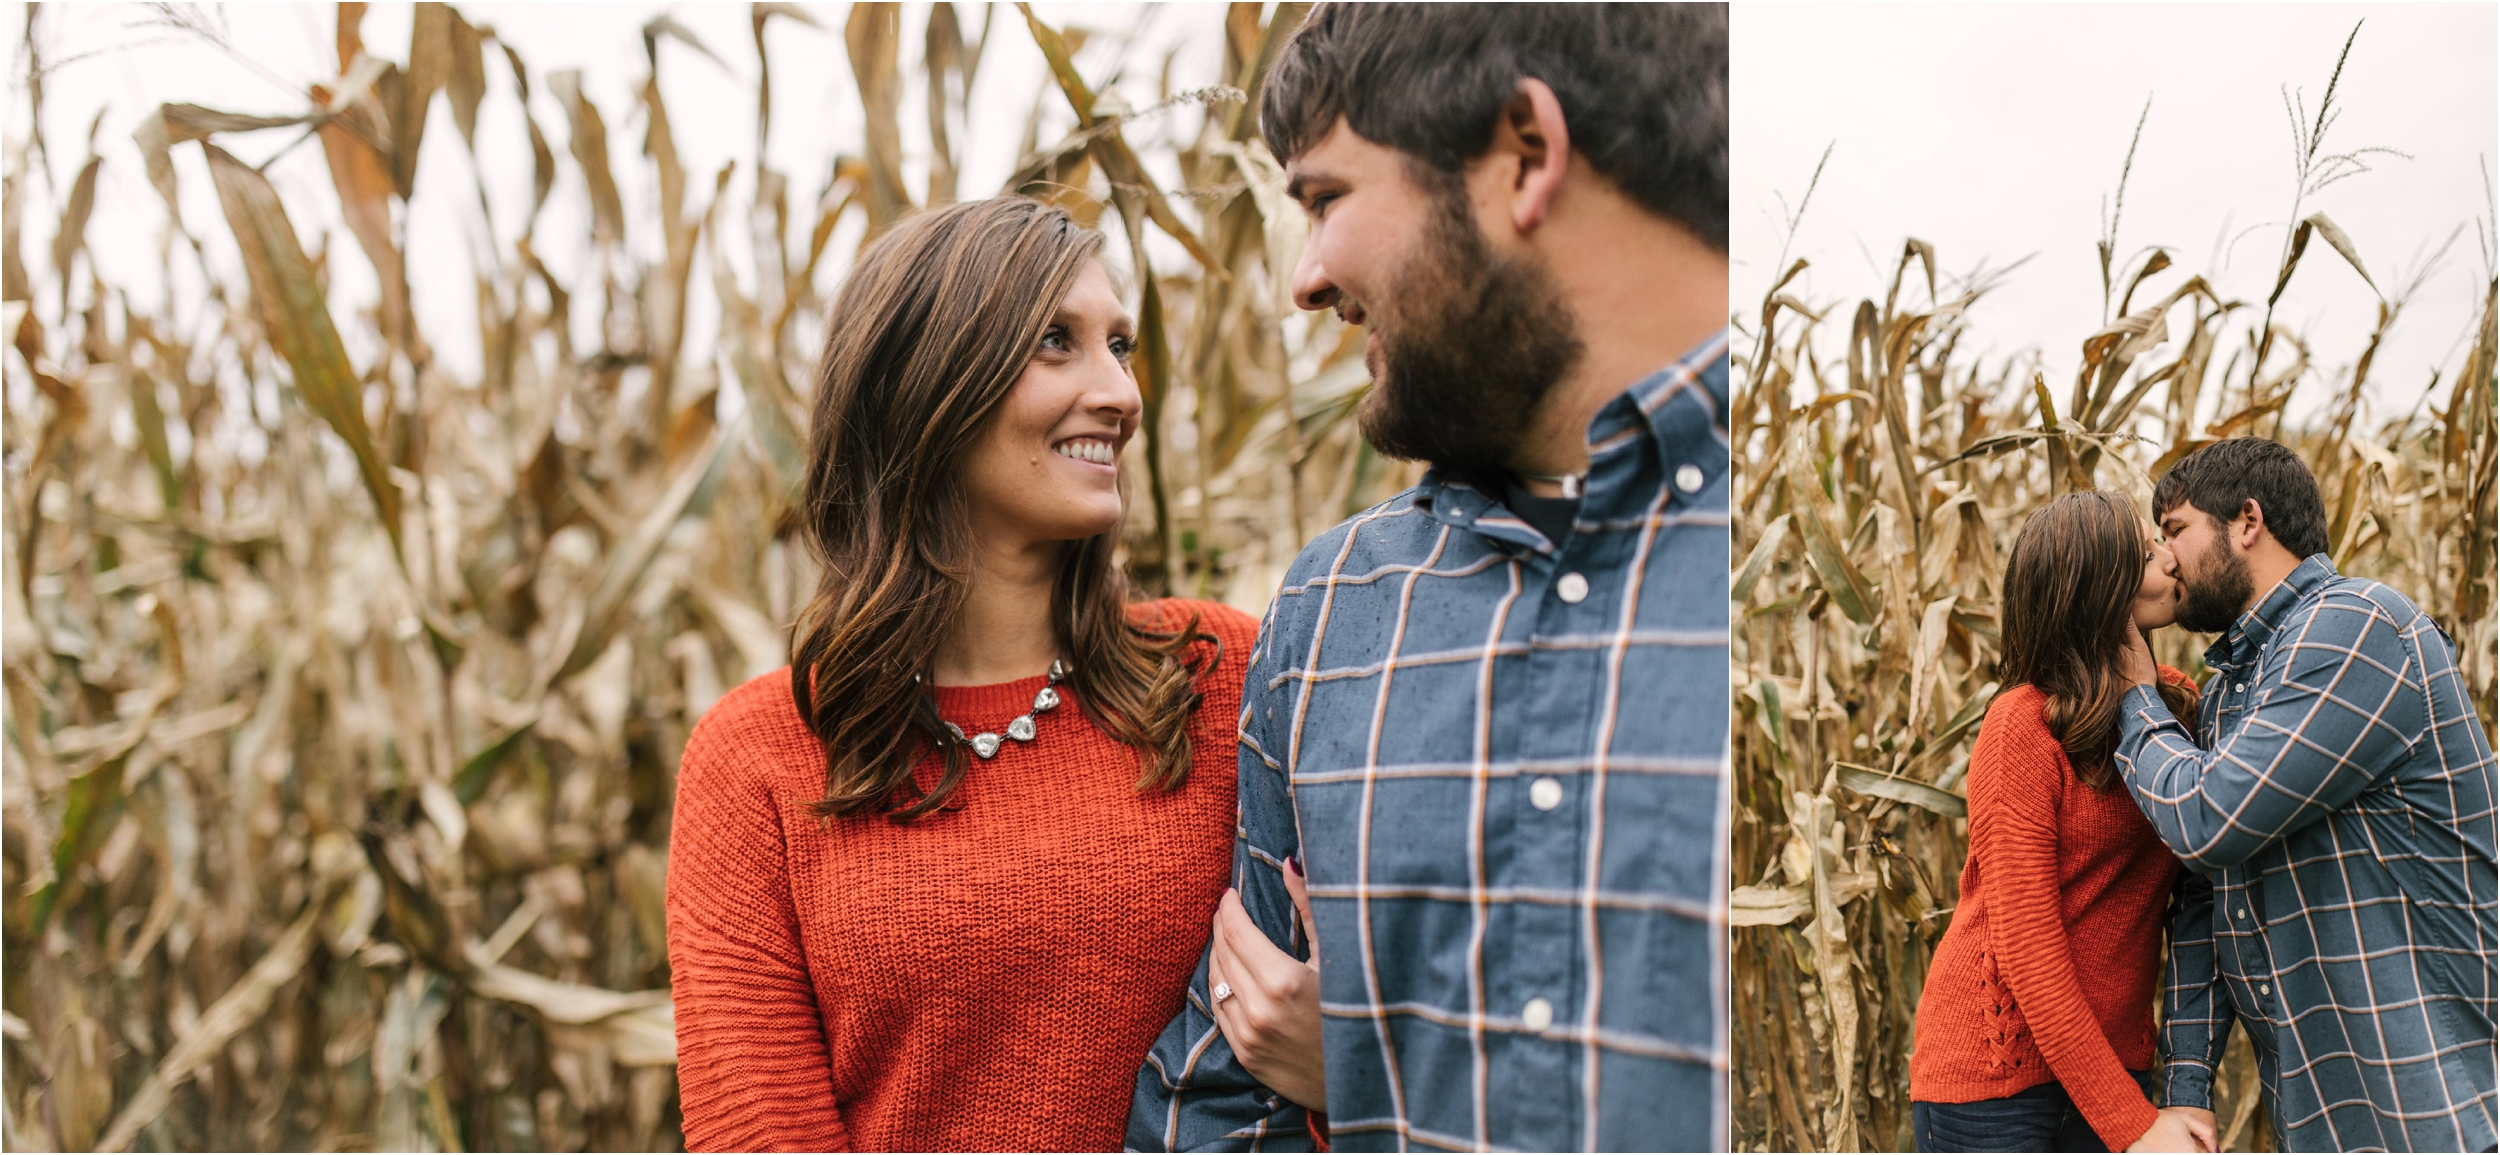 Countryside Engagement Photos_ Minnesota Wedding Photographer_Stephanie Lynn Photography_0066.jpg